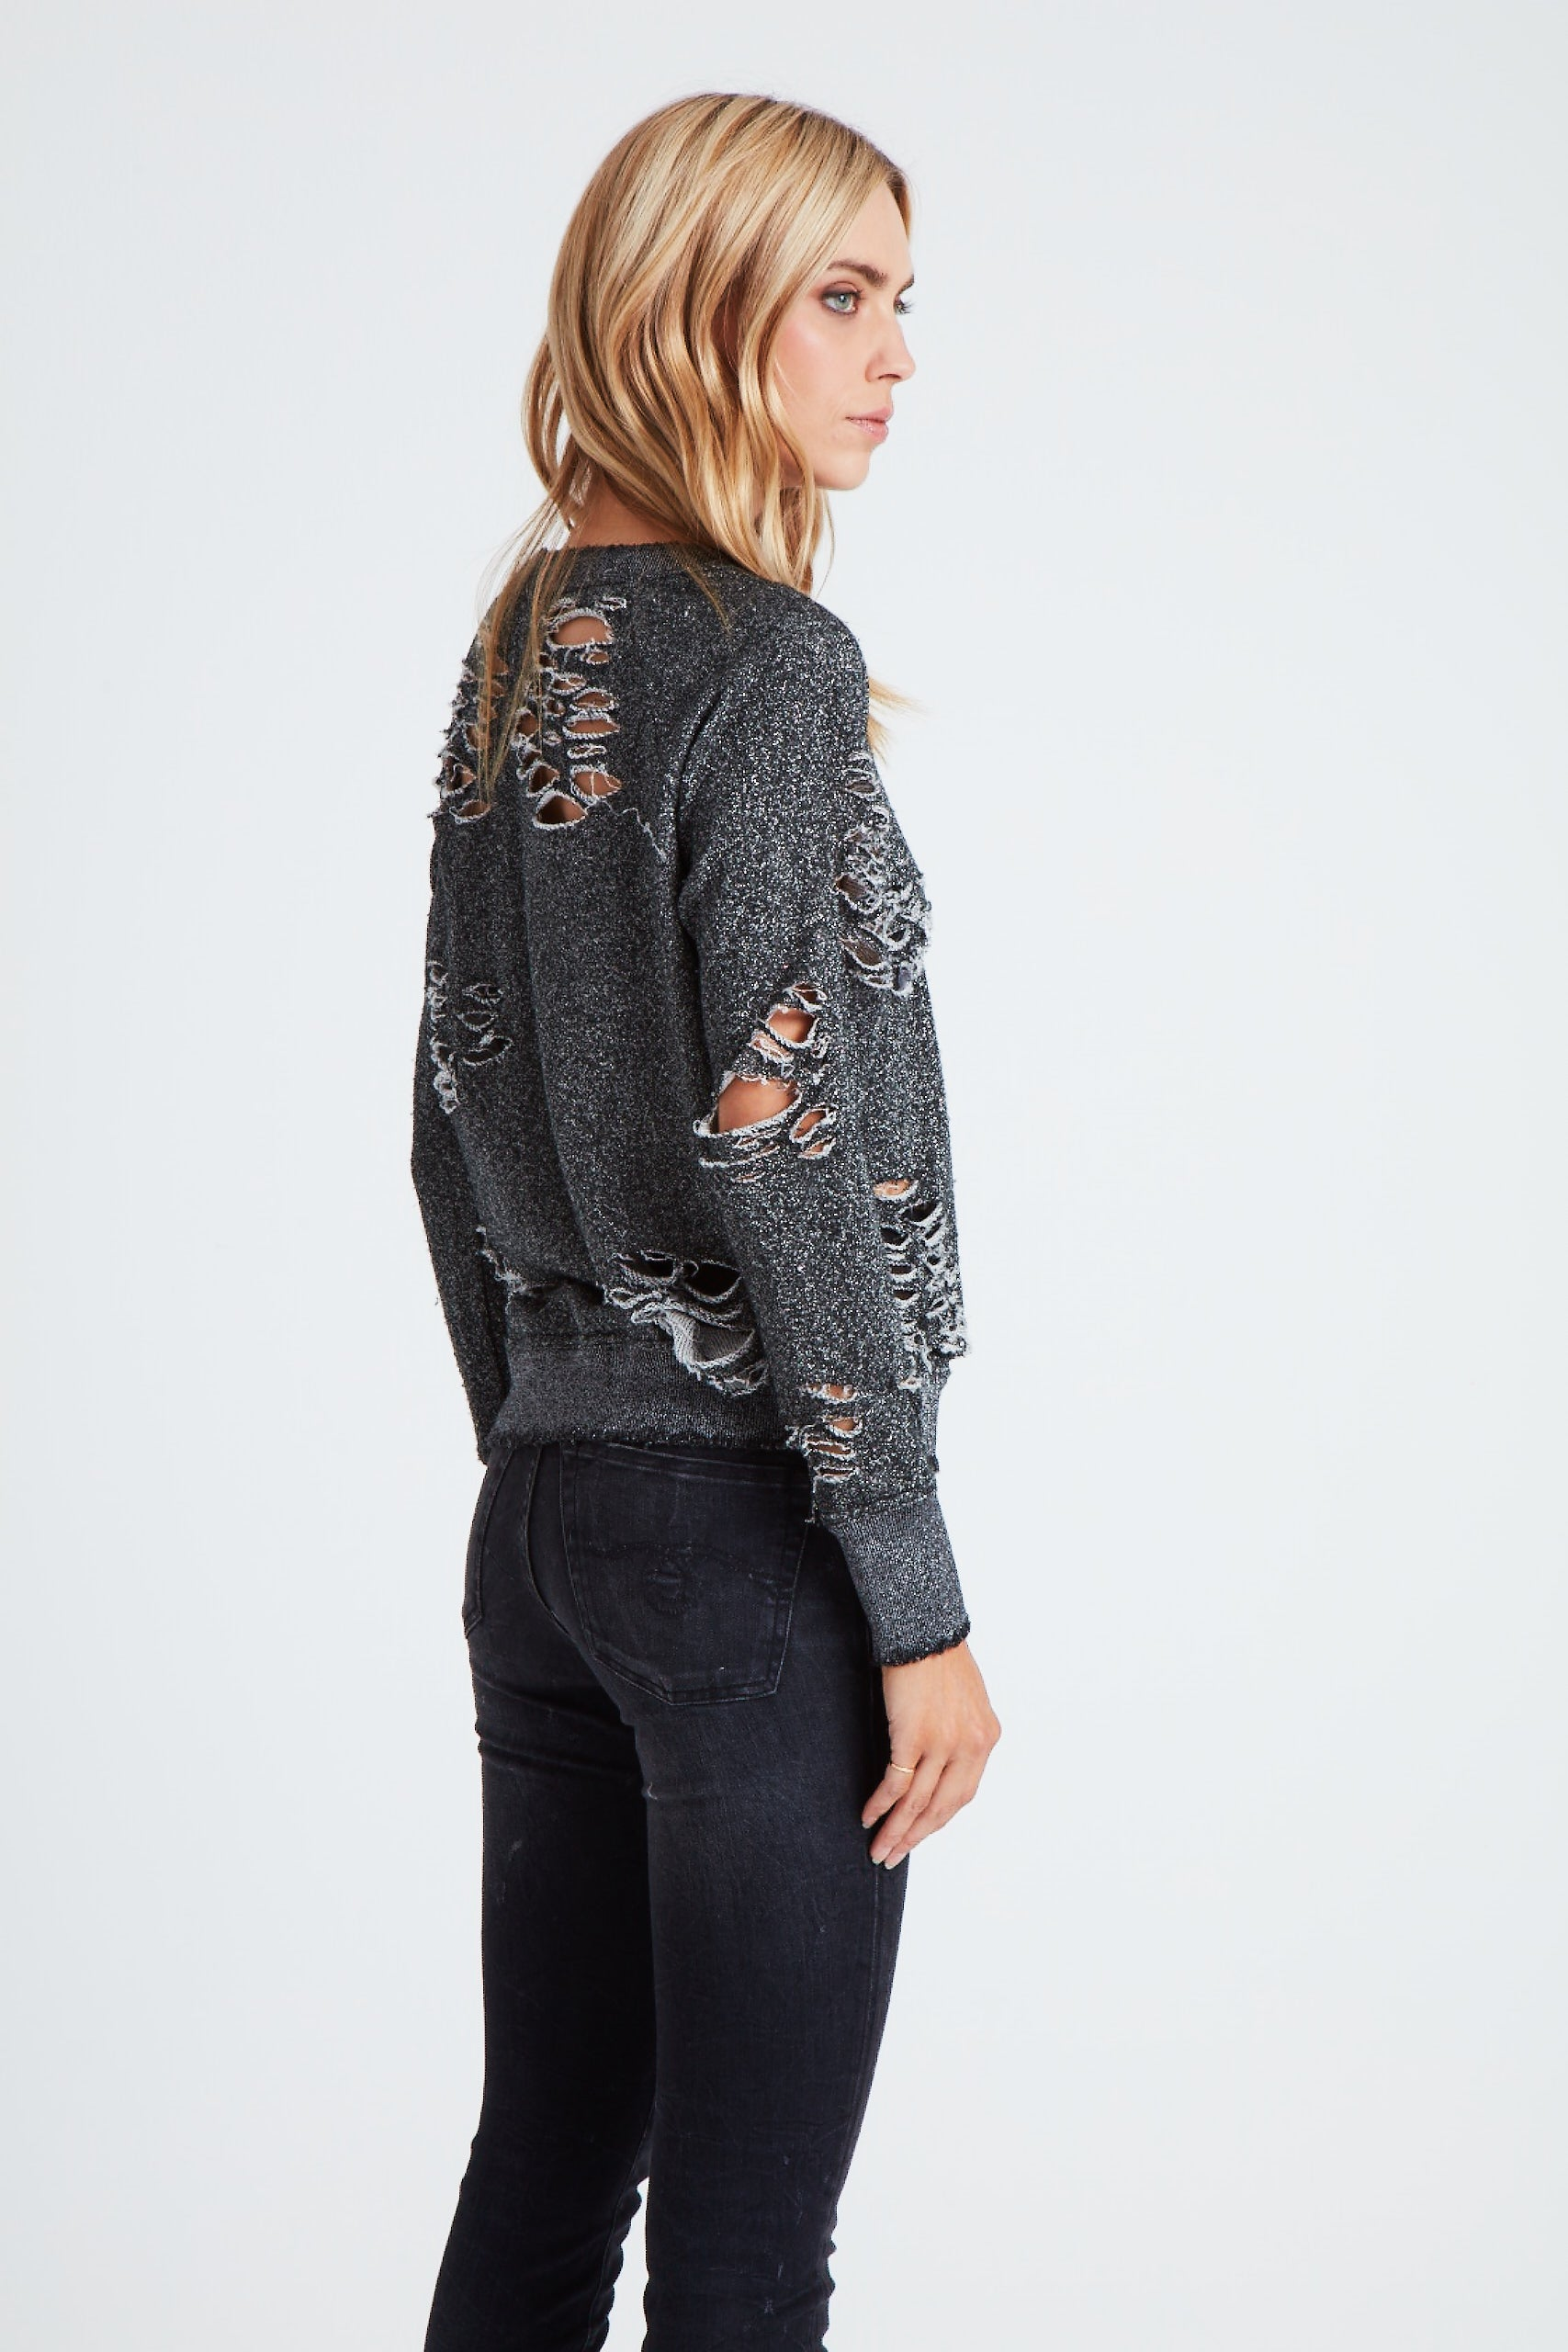 The Cluster Star Sweatshirt  - Dark Grey